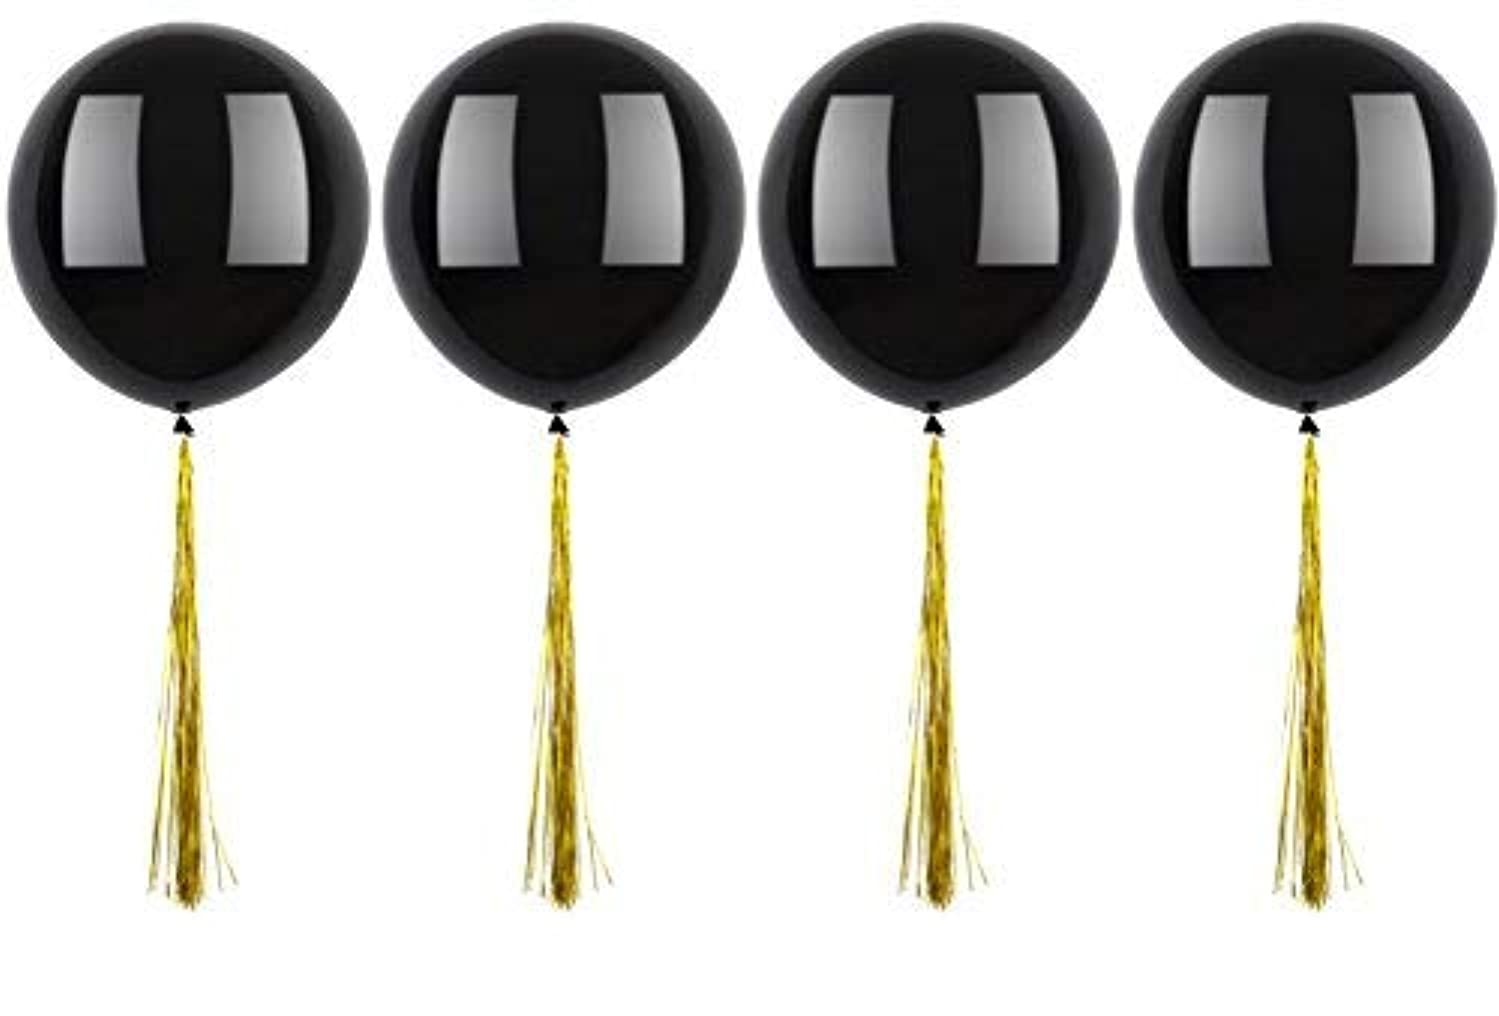 Fonder Mols 4pcs 36inch Giant Black Jumbo Balloons with Gold Foil Tassels Garland for 2019 Graduation & Wedding Party Decorations